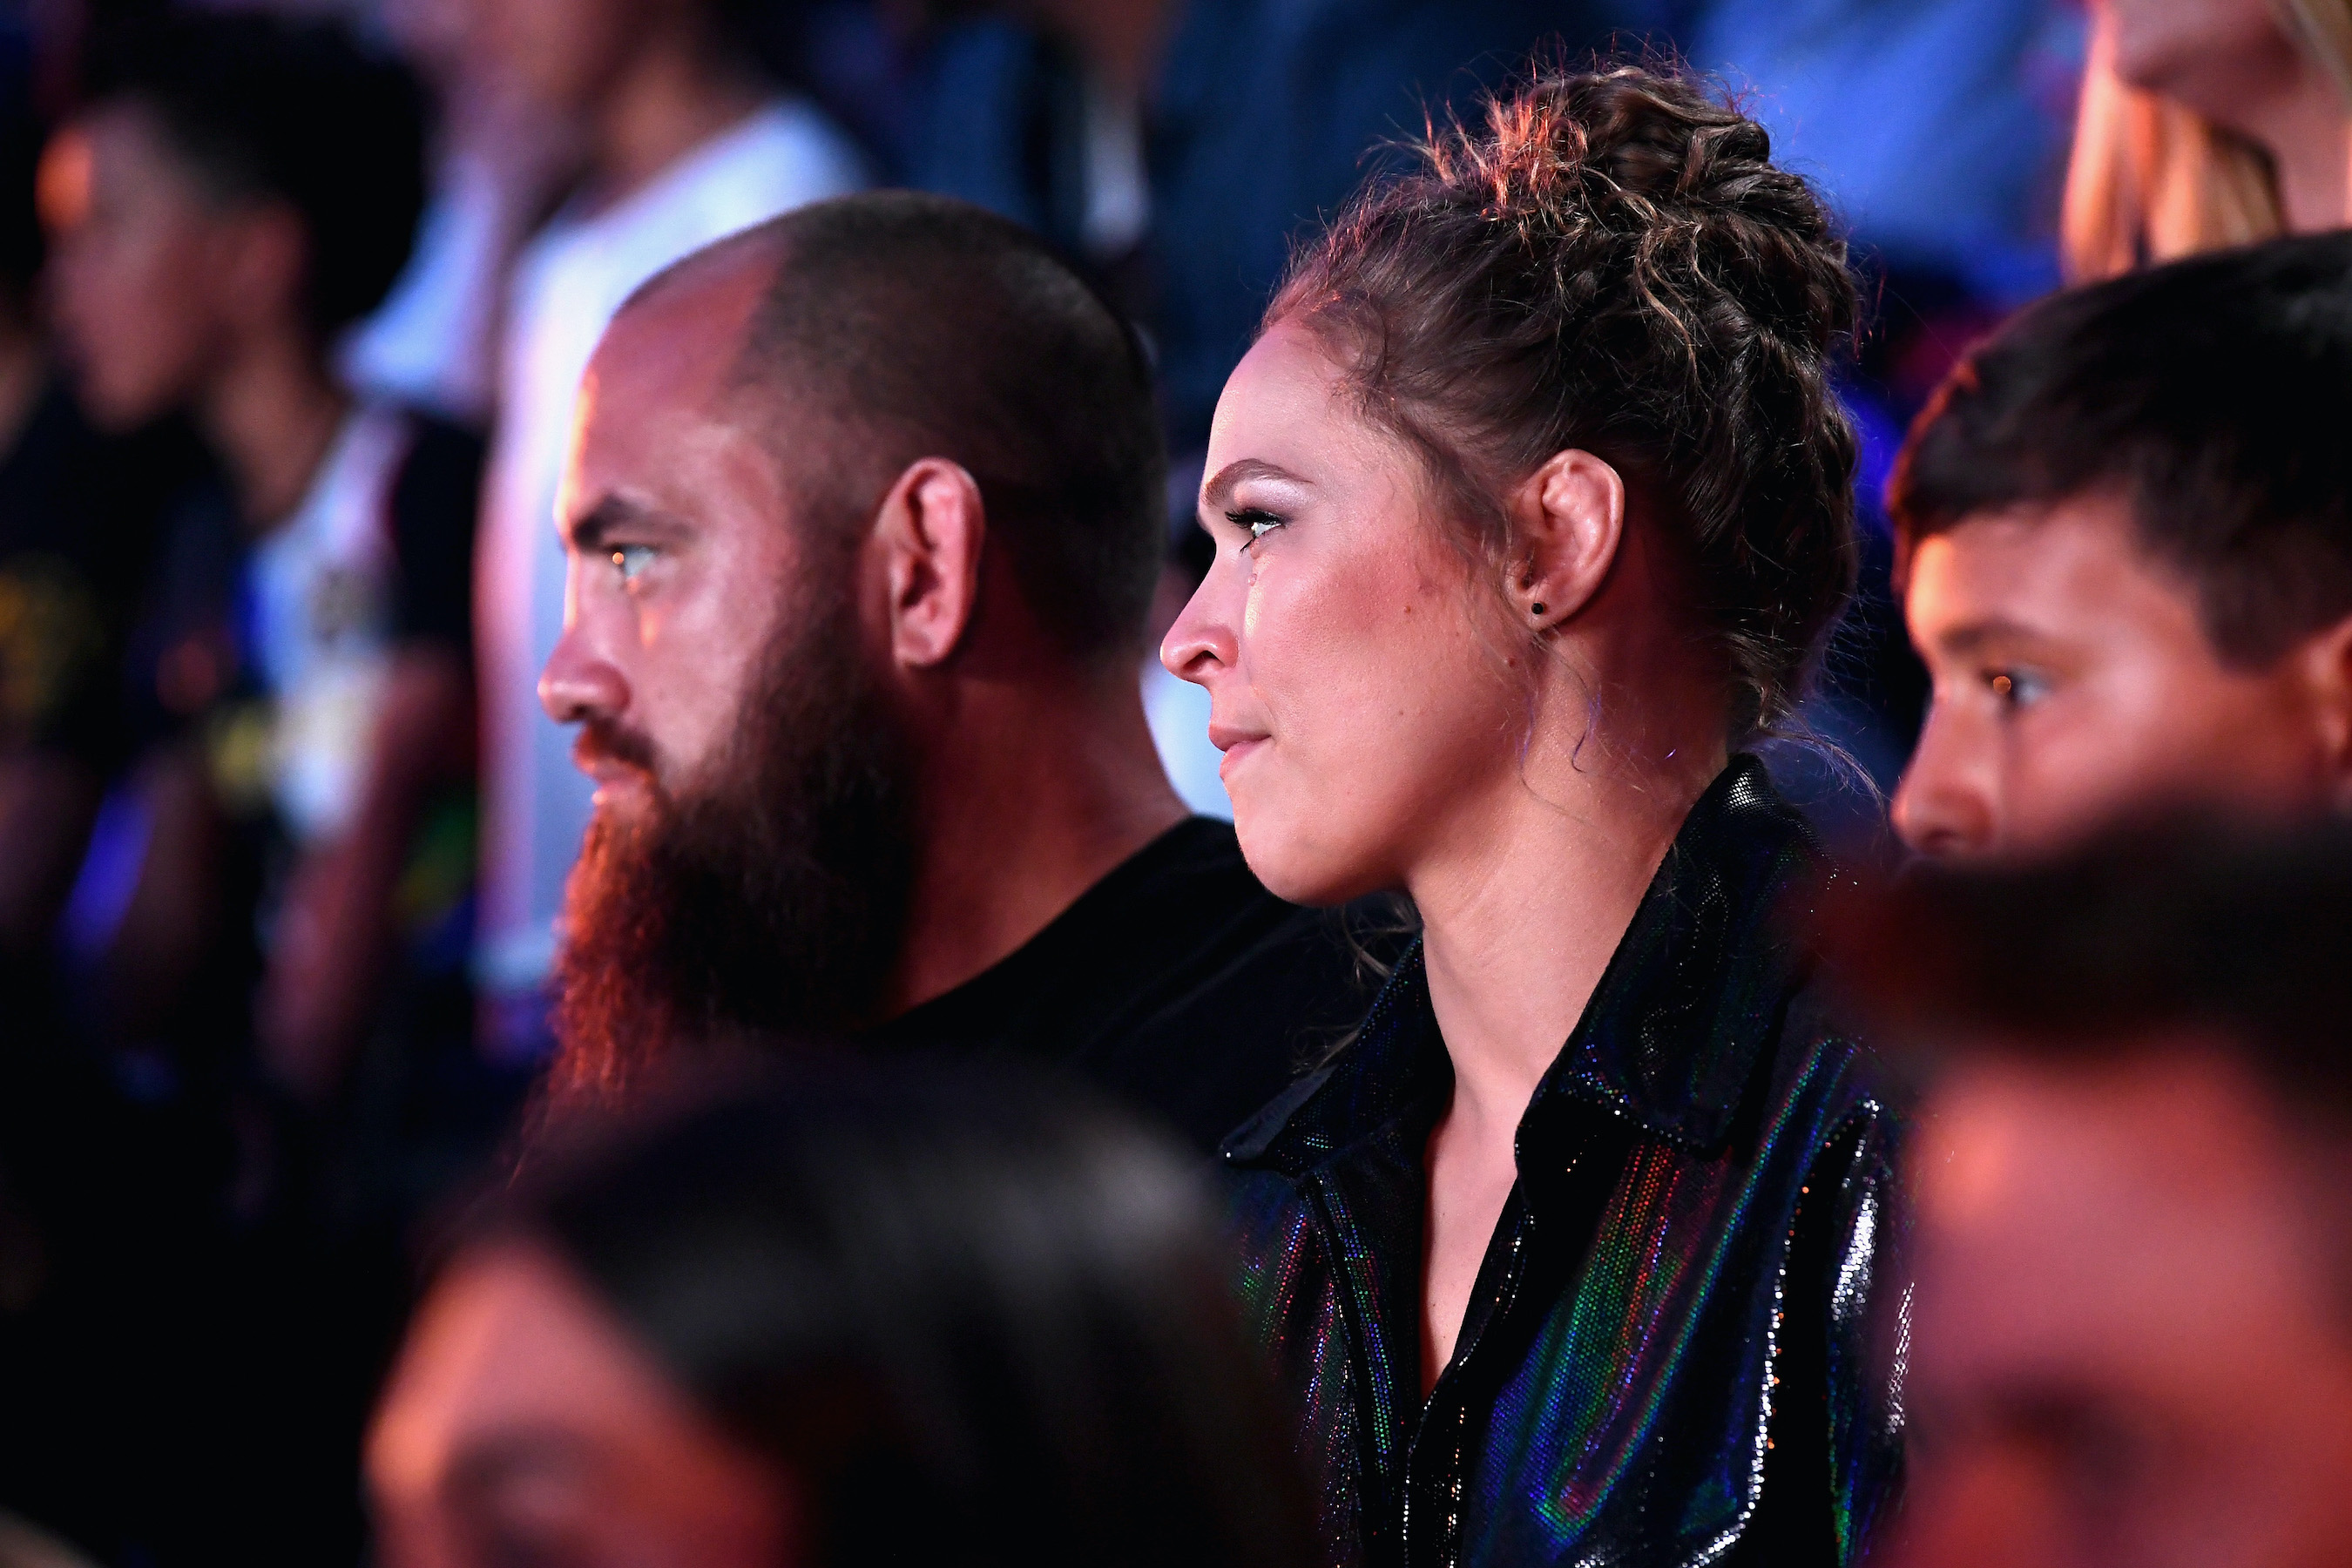 Ronda Rousey Is Still the Highest-Paid Female WWE Wrestler By Far